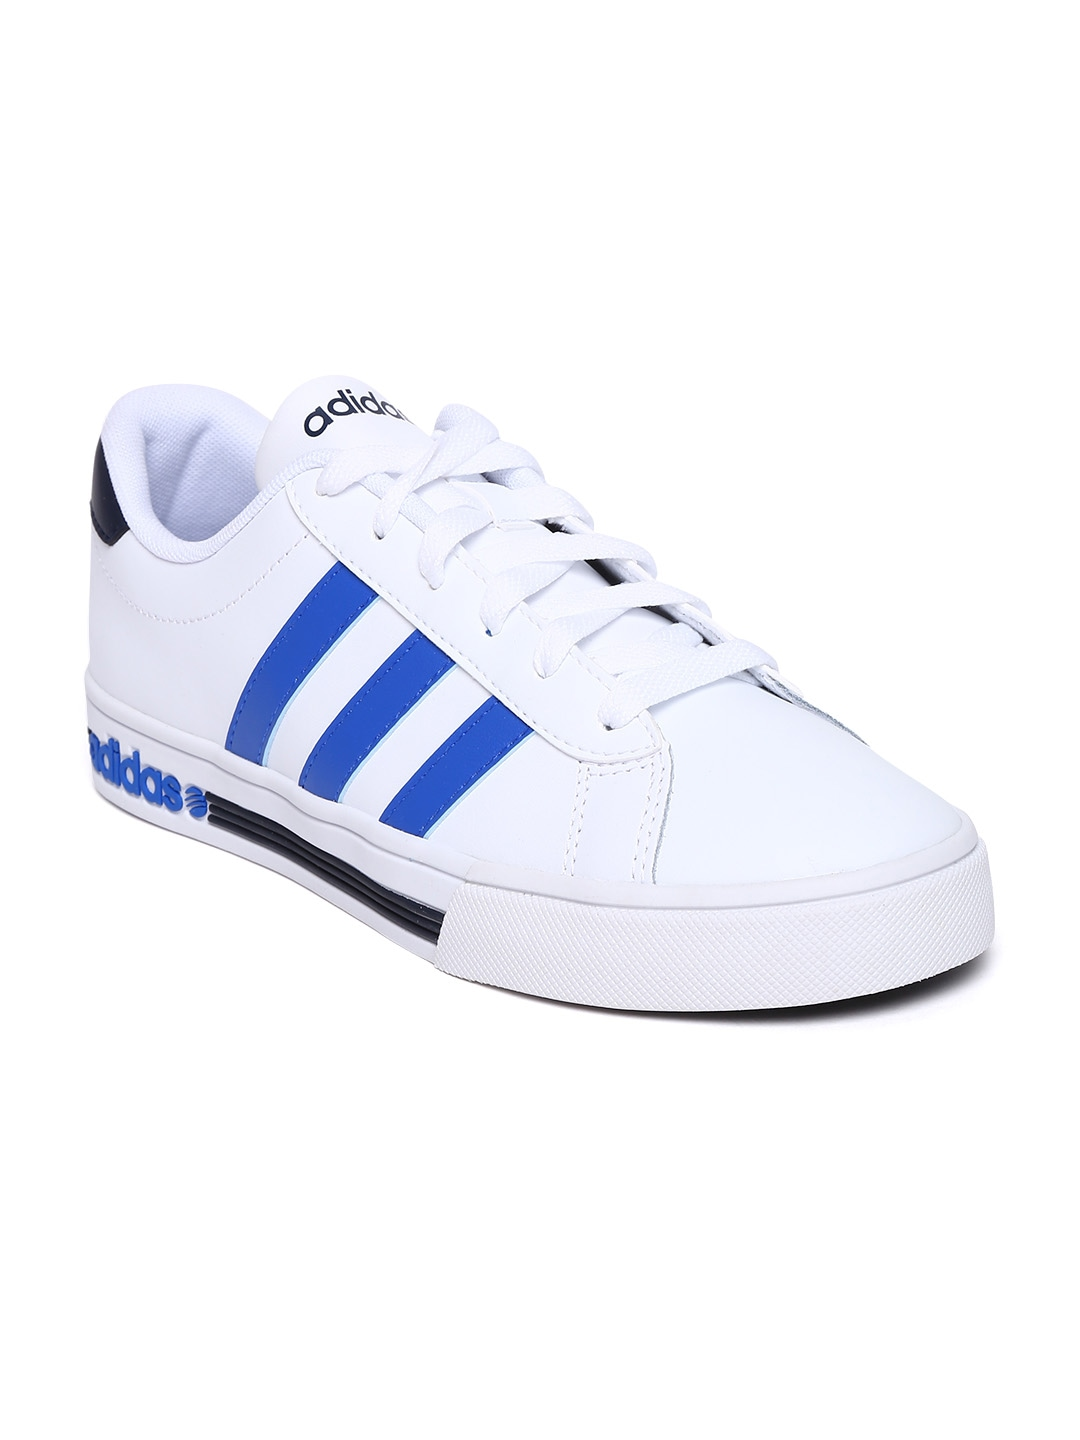 Adidas Neo Daily Sneakers